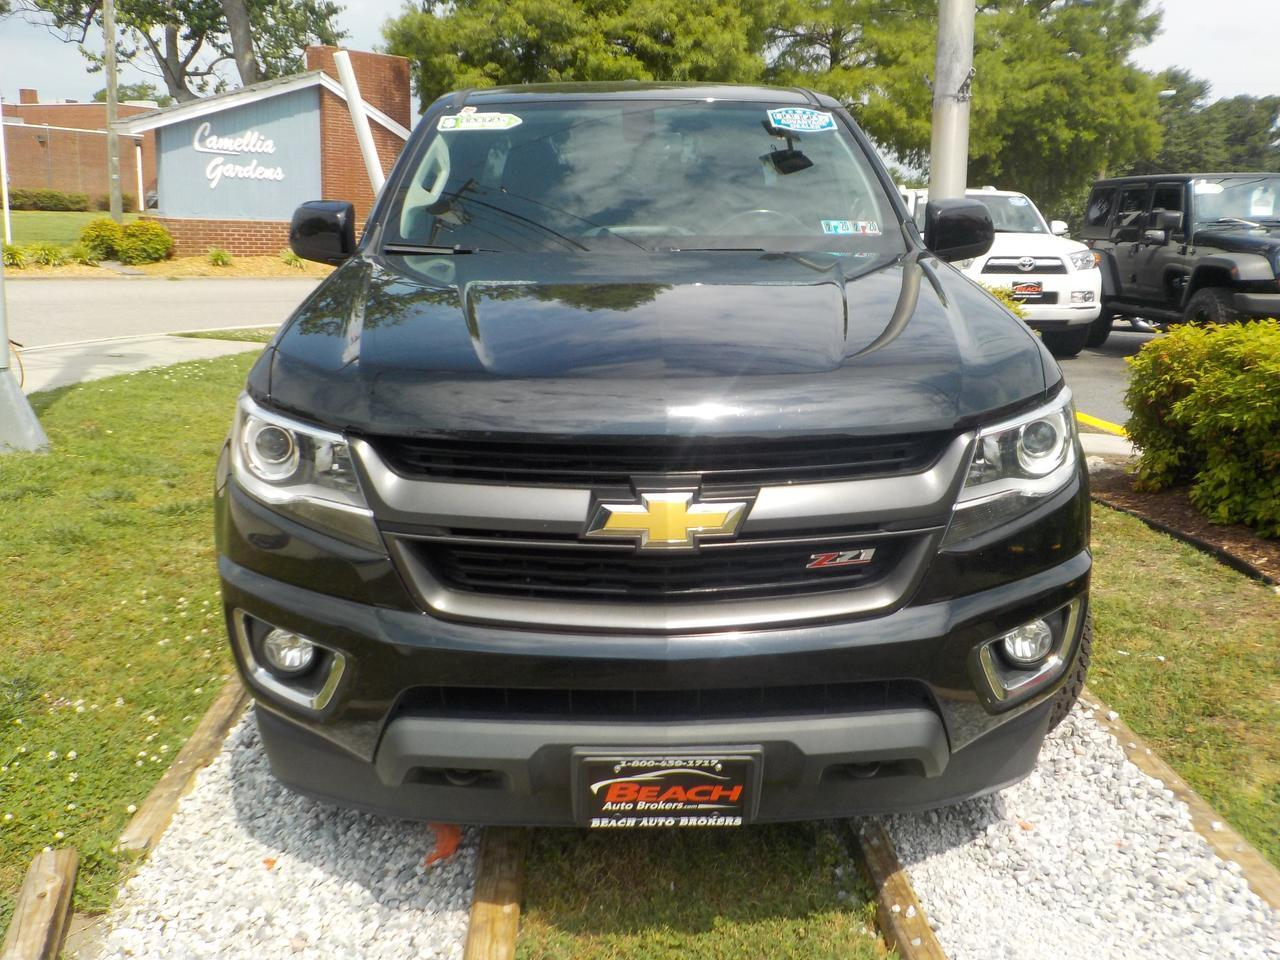 2016 CHEVROLET COLORADO Z71 EXTENDED CAB 4X4, WARRANTY, LEATHER/CLOTH  SEATS, BACKUP CAM, NAV, REMOTE START, ONLY 1 OWNER!